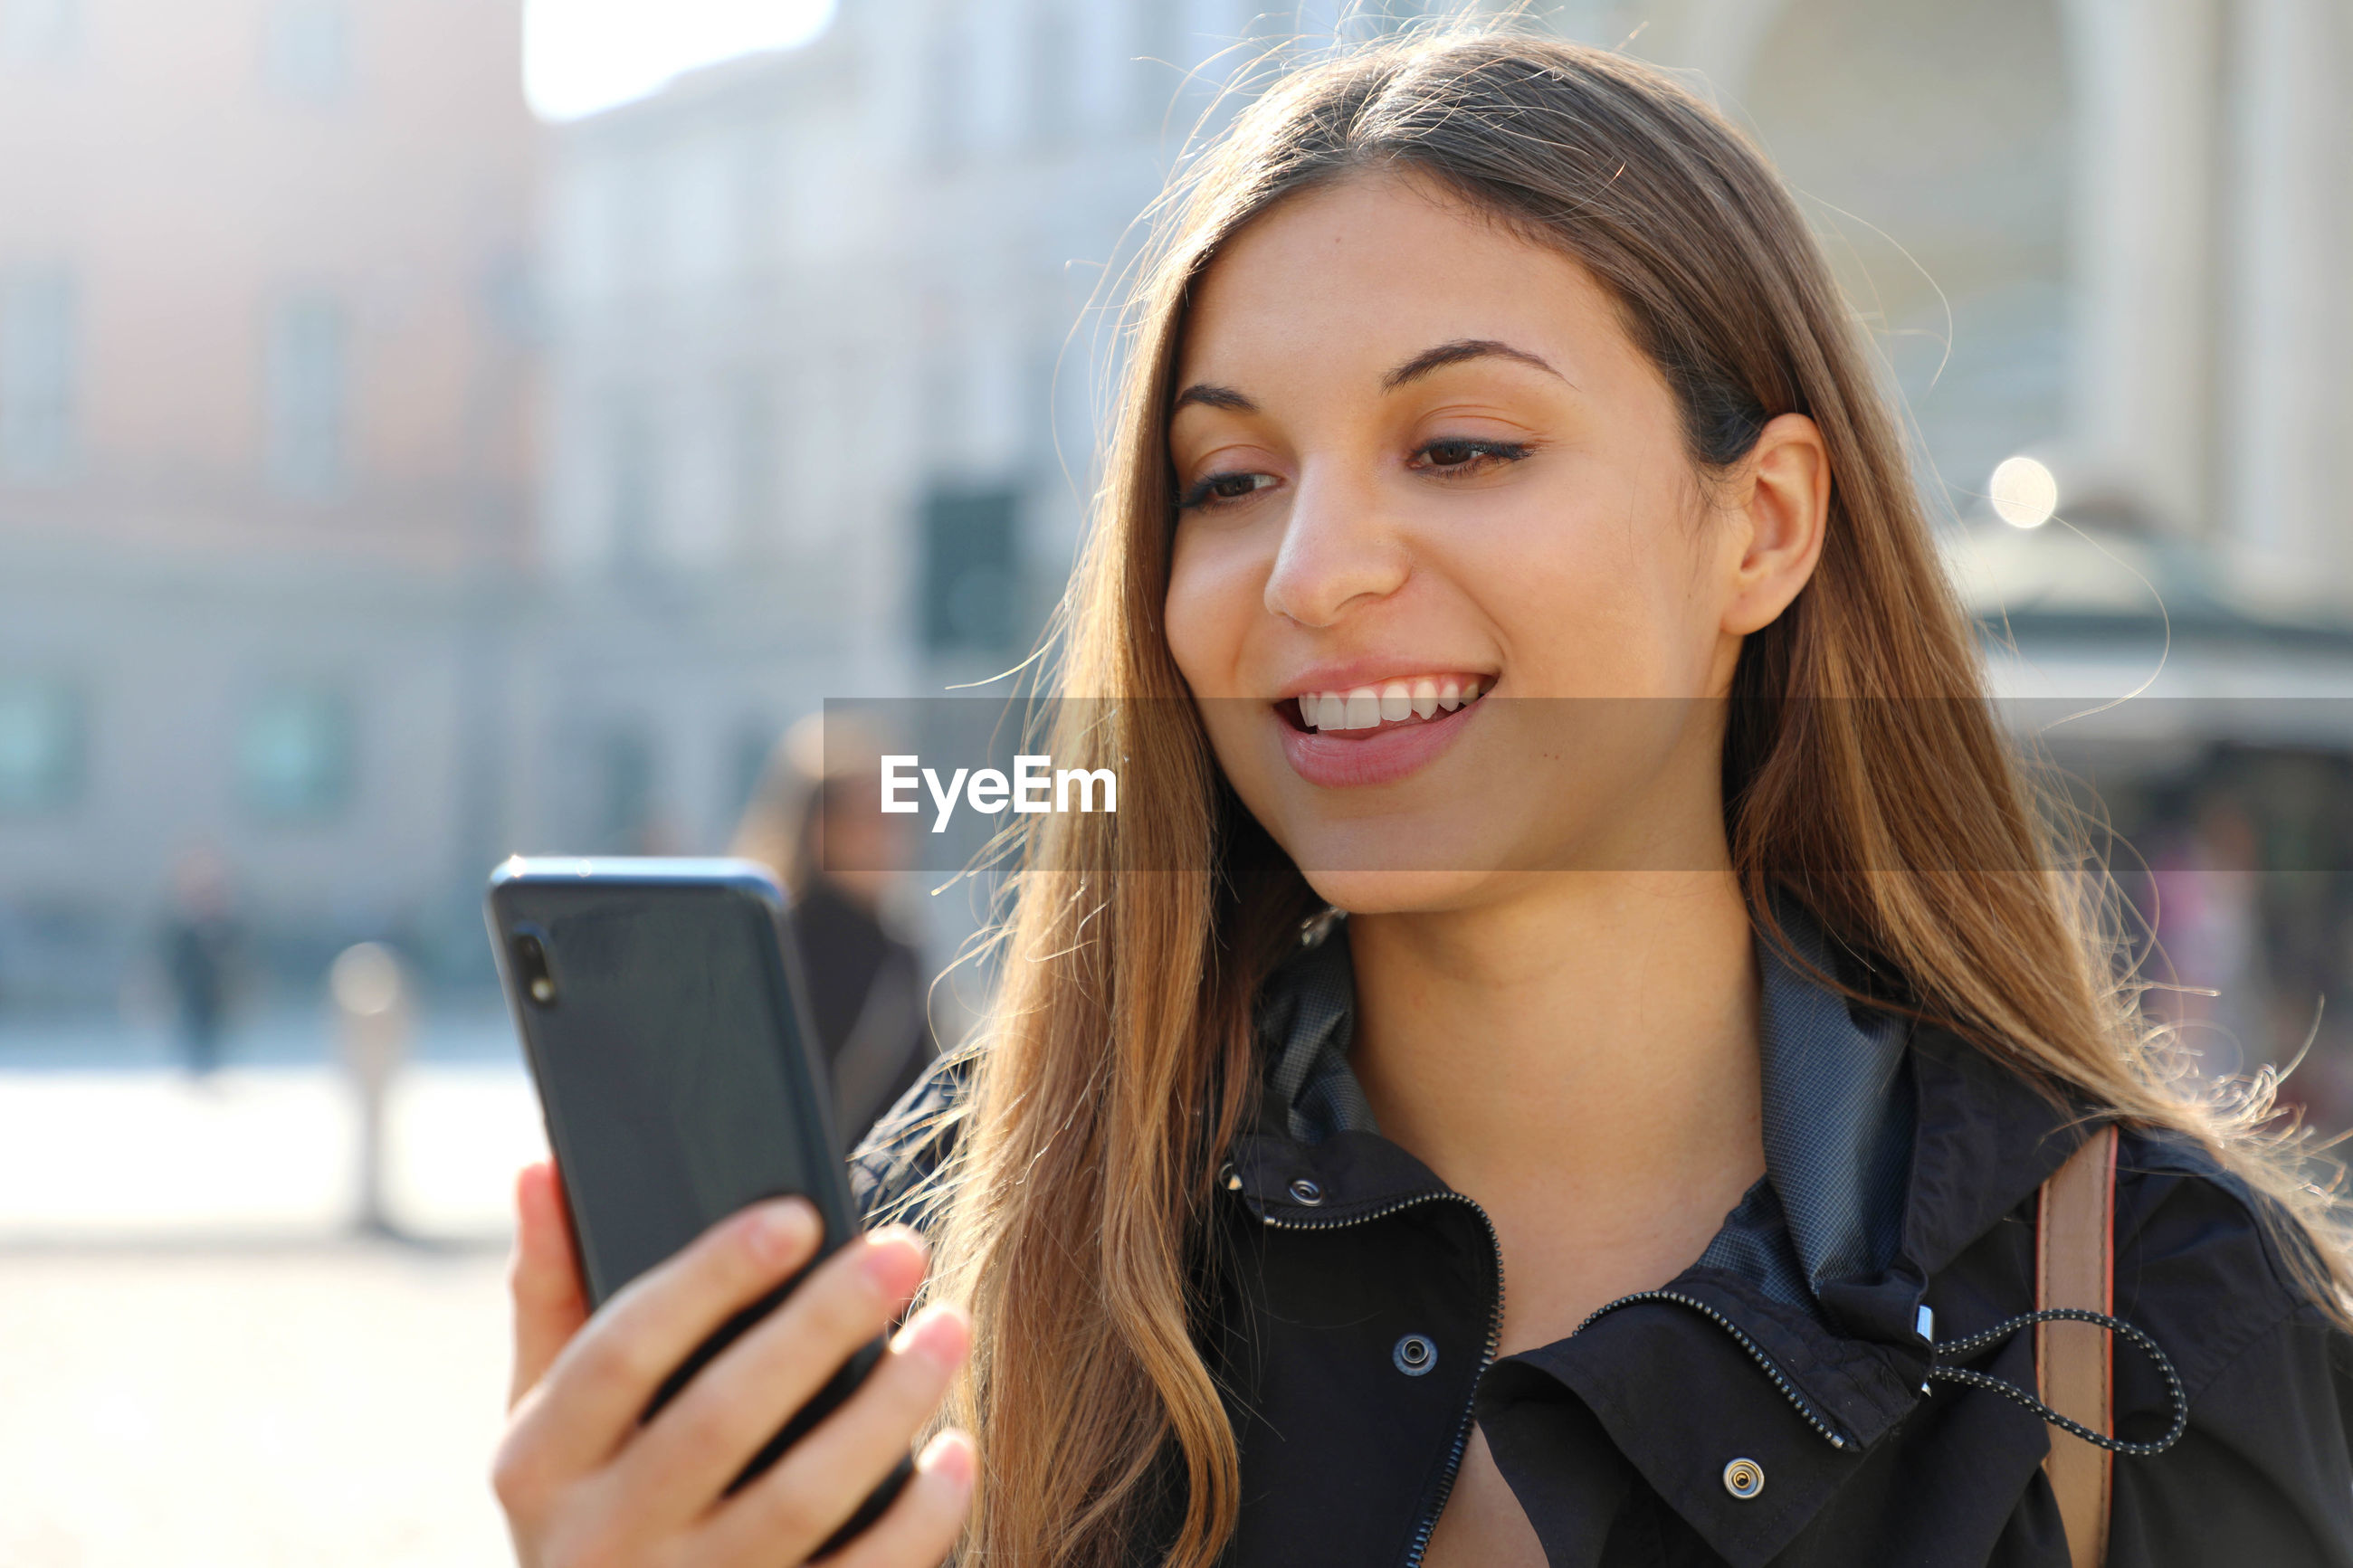 Smiling young woman using phone in city